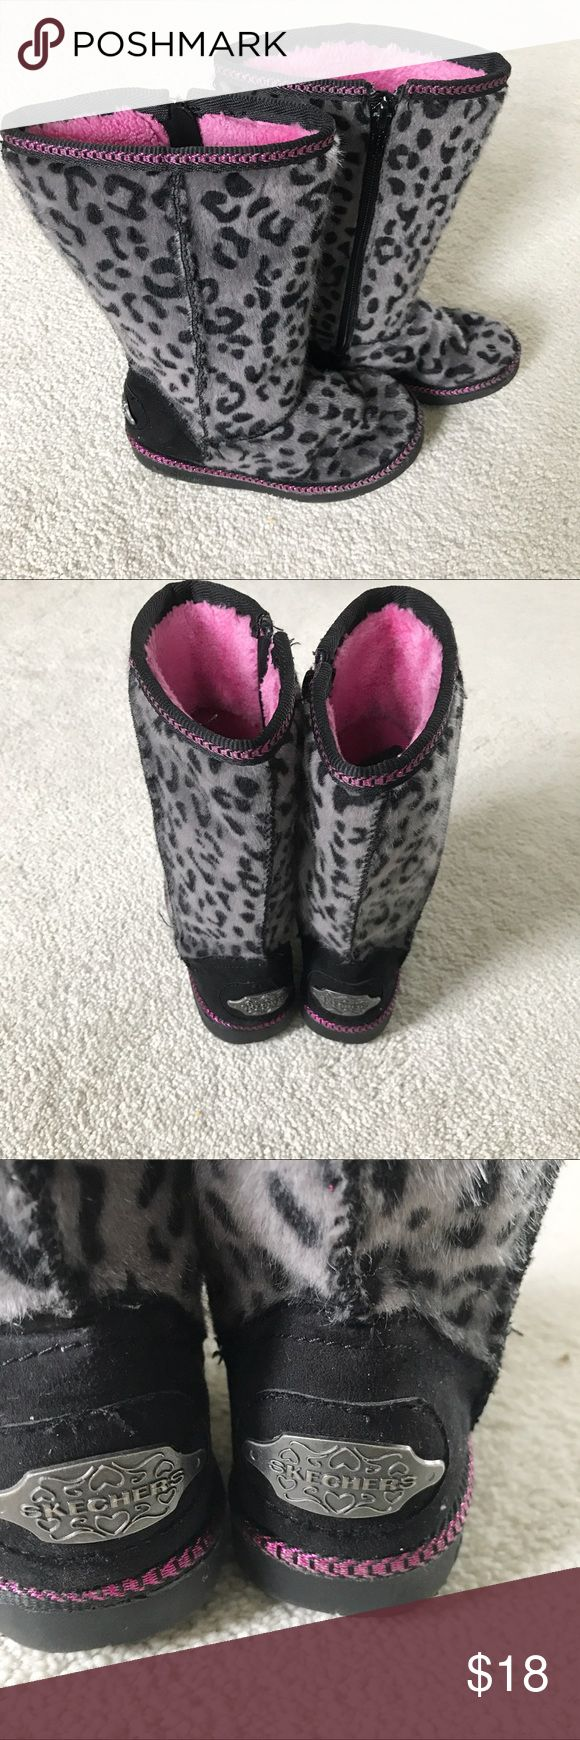 KIDS SKECHERS WINTER BOOTS In great condition.size 11 Skechers Shoes Boots